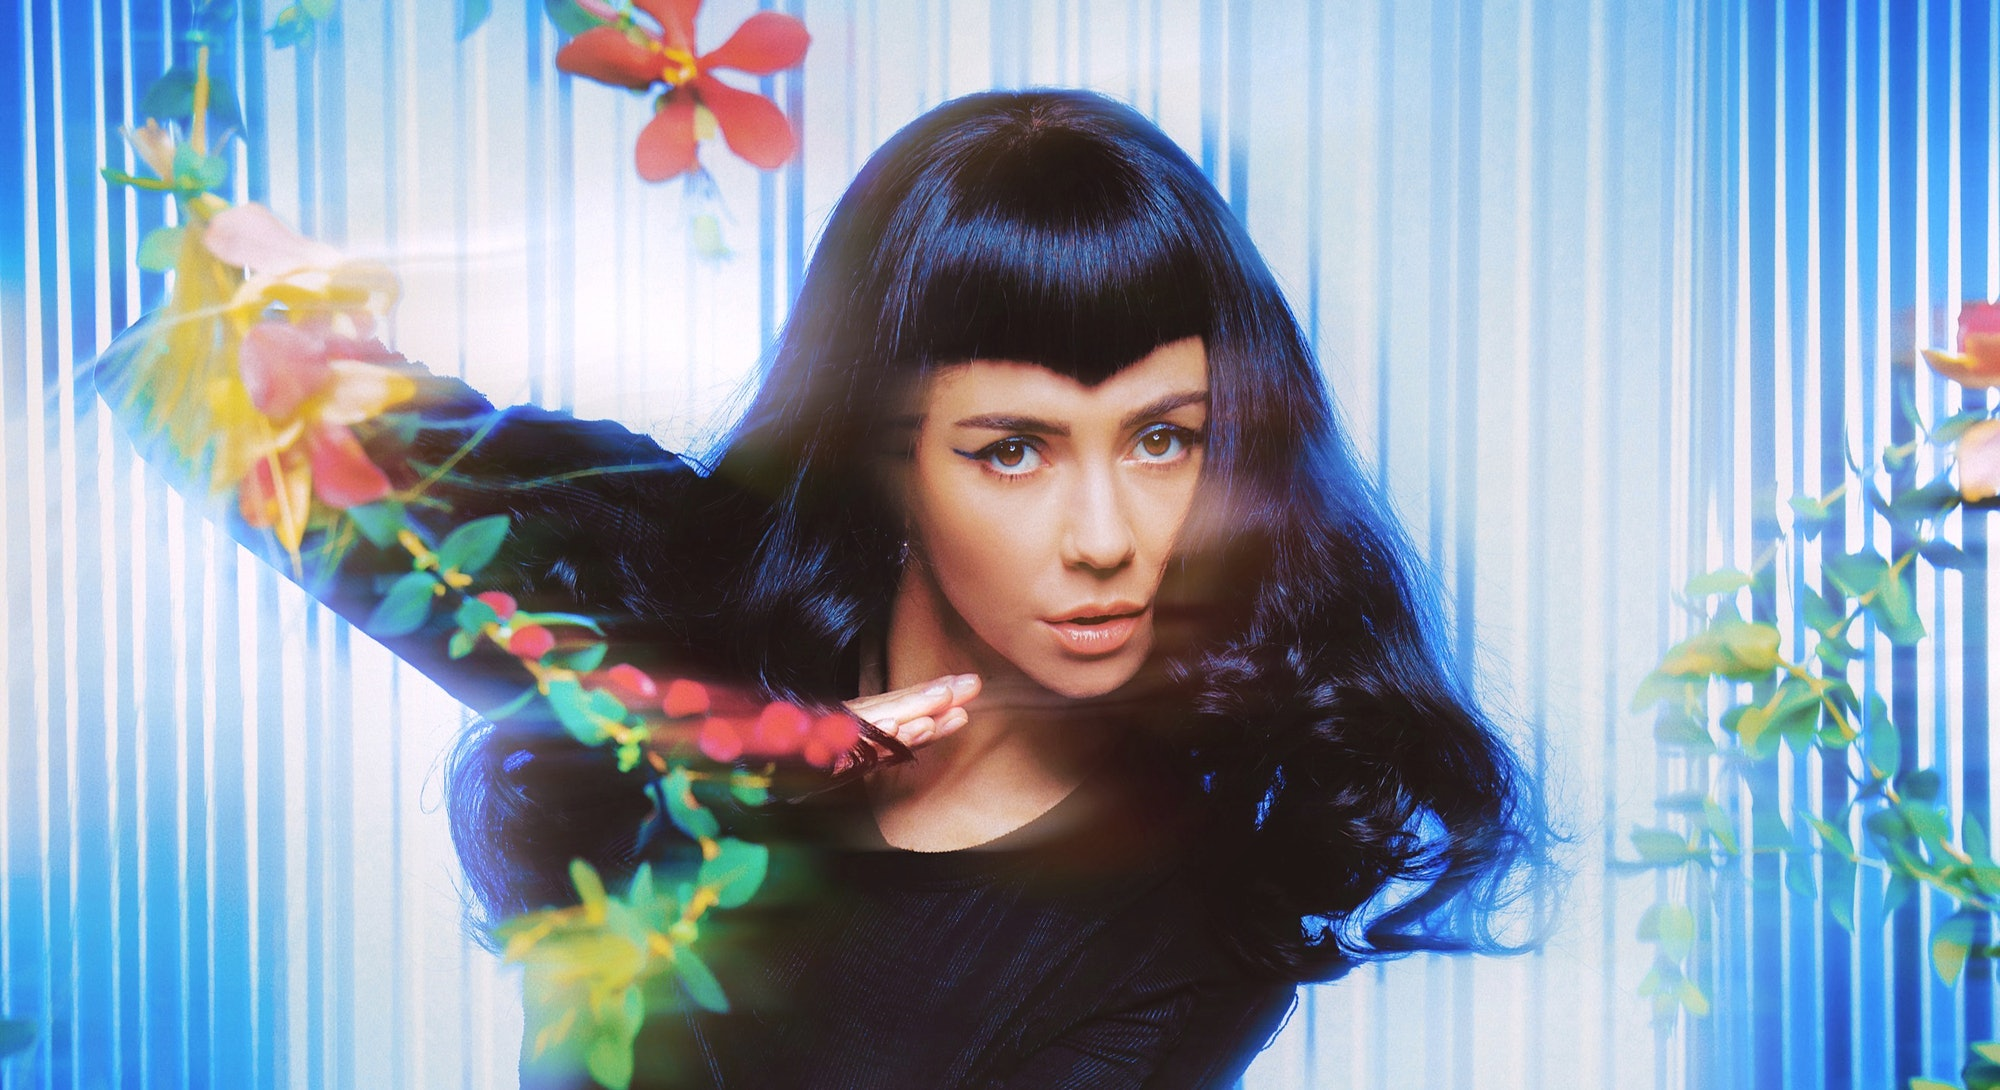 A photo of MARINA. She's in a black outfit and standing against a cyber blue background with tropical flowers.